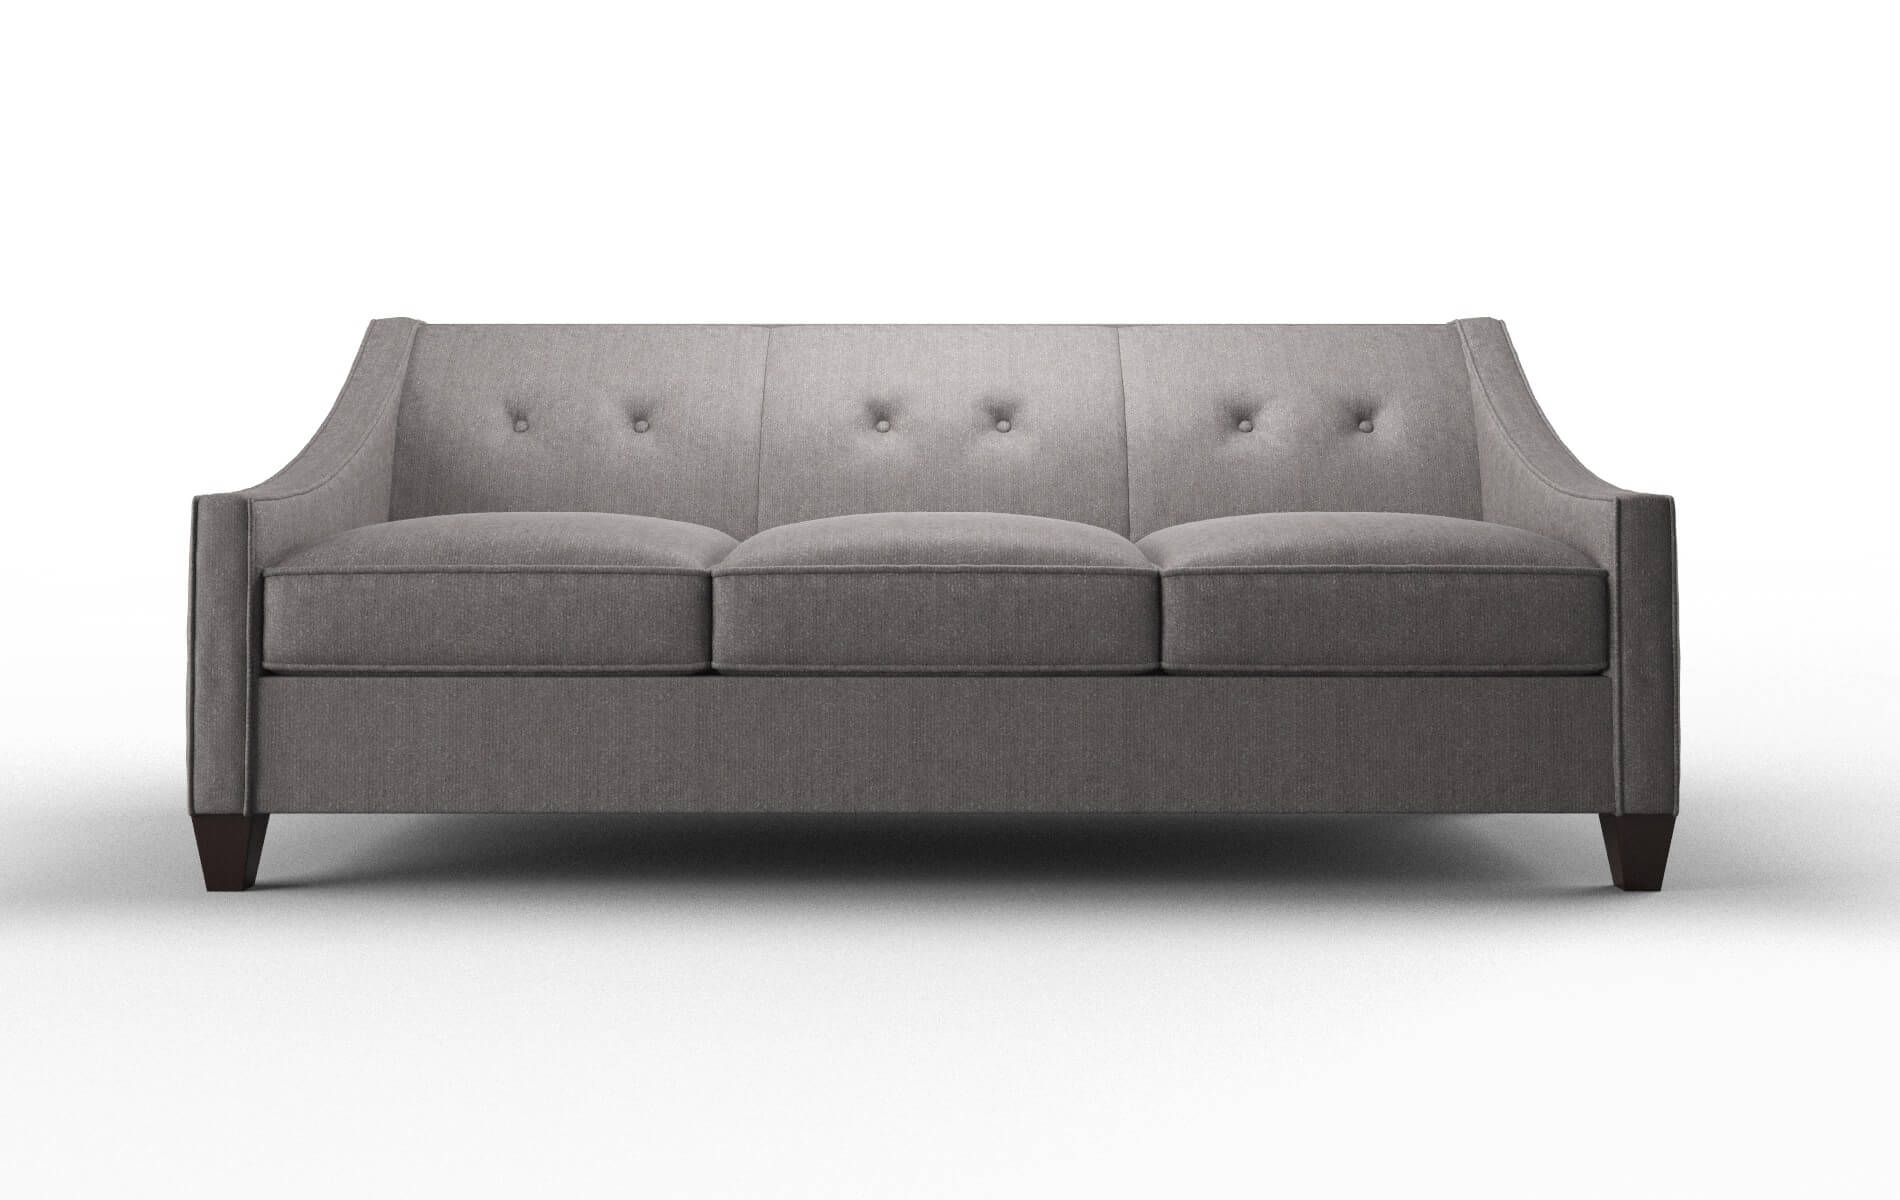 Sofa Berlin Berlin Sasha Granite Sofa Dreamsofa